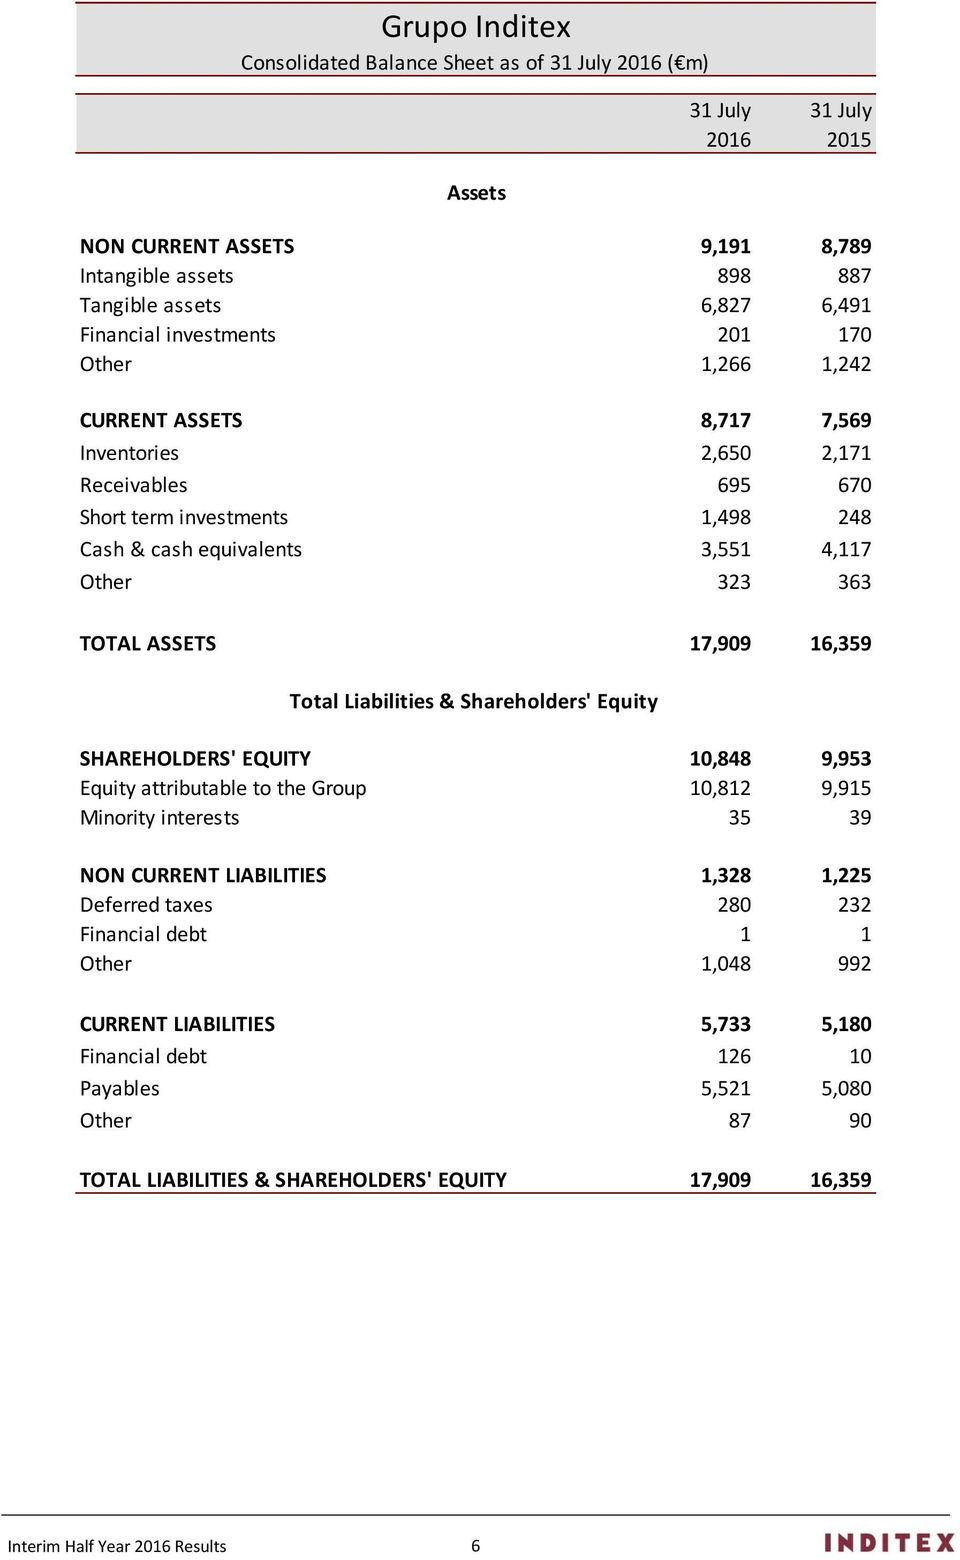 ASSETS 17,909 16,359 Total Liabilities & Shareholders' Equity SHAREHOLDERS' EQUITY 10,848 9,953 Equity attributable to the Group 10,812 9,915 Minority interests 35 39 NON CURRENT LIABILITIES 1,328